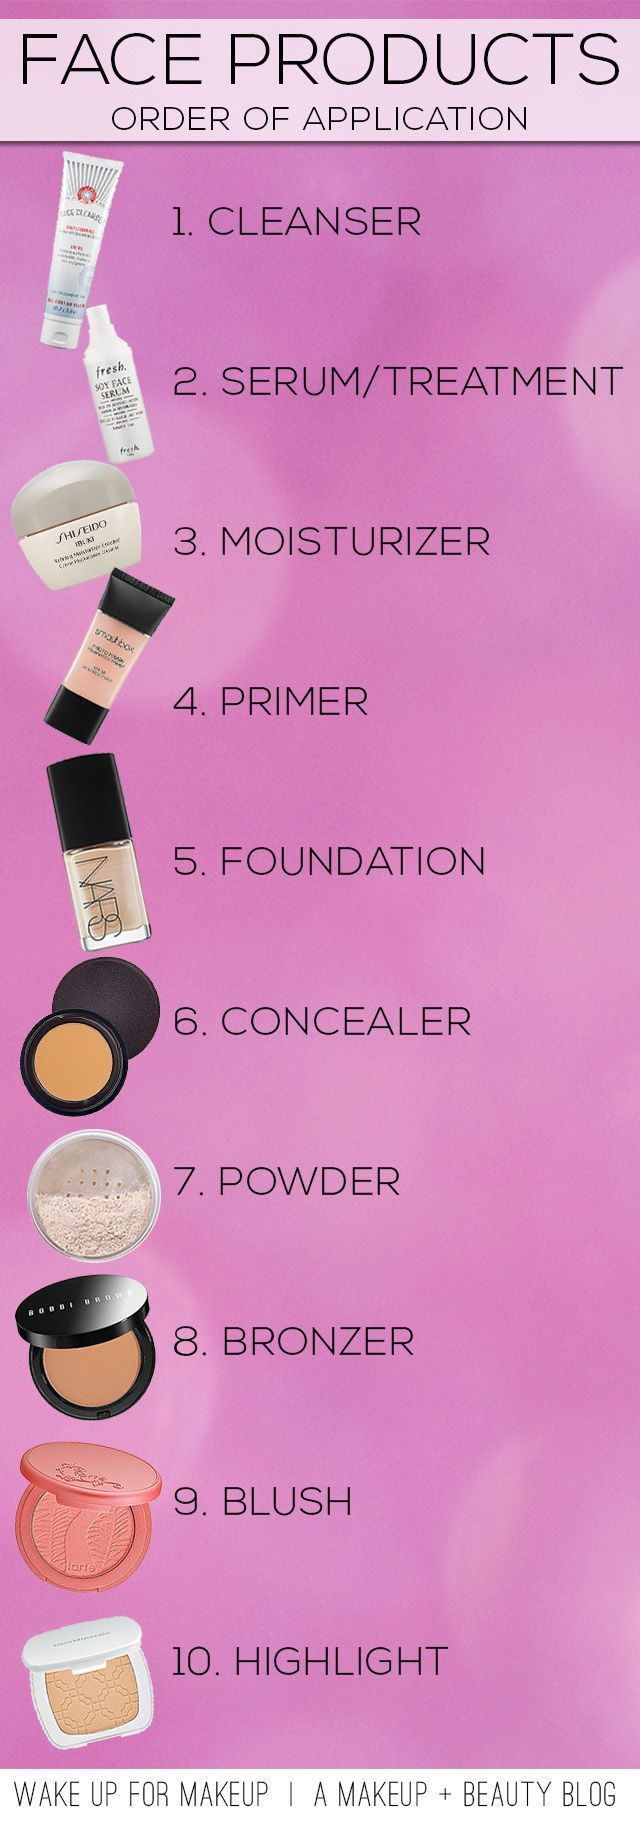 Order to apply face products highlighters primer and makeup order to apply face products baditri Image collections